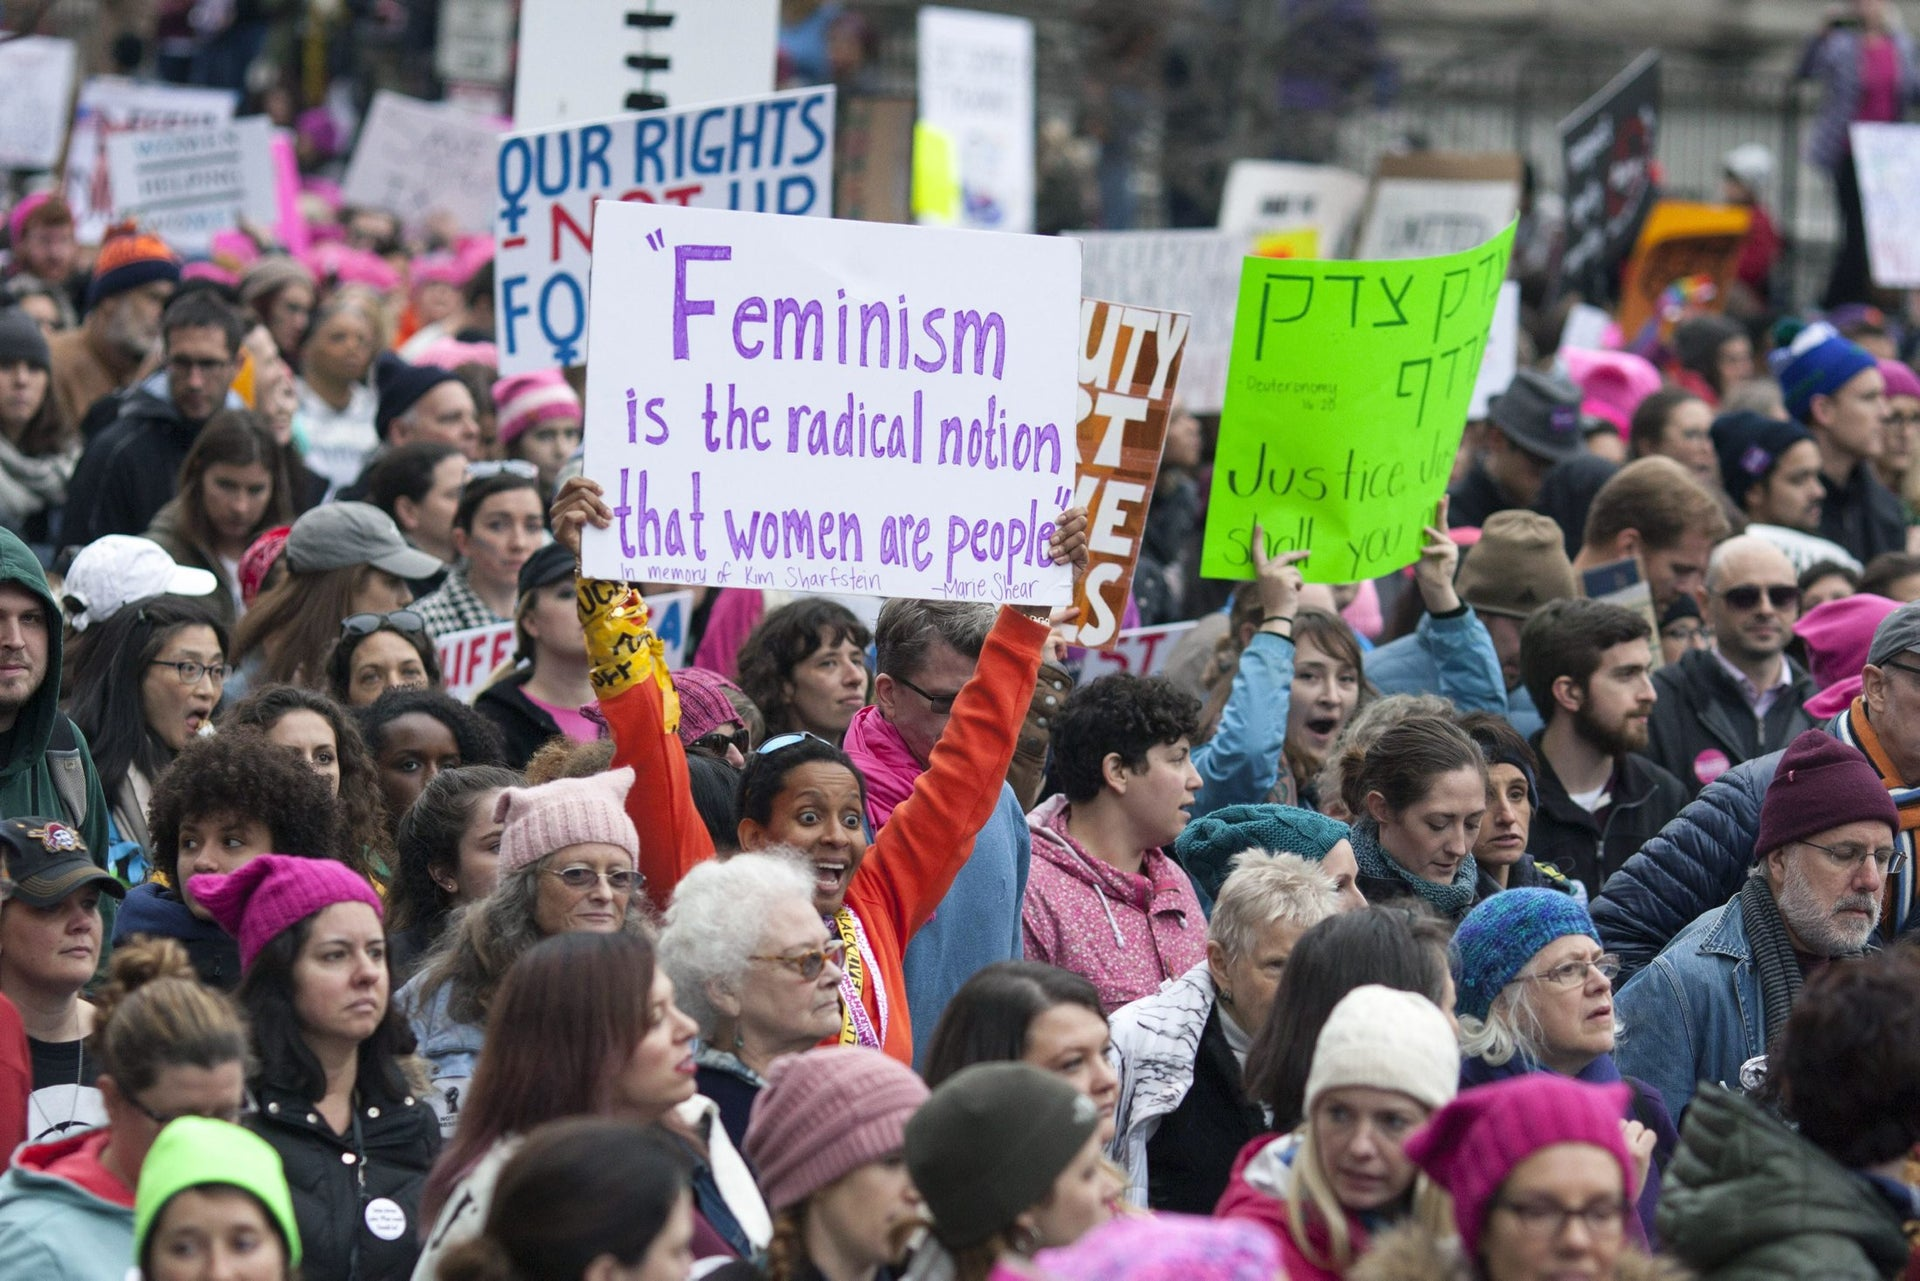 People protest in the streets at the Women's March on Washington on January 21, 2017 in Washington, D.C.